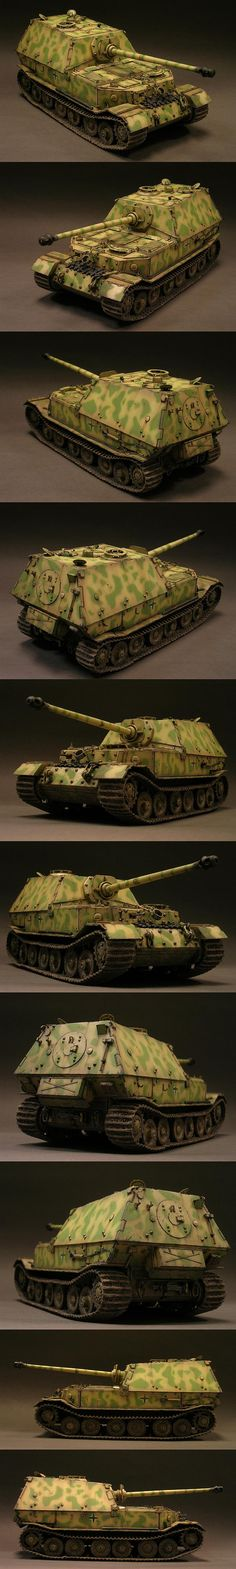 Panzerjager Tiger (P) Sd. Kfz. 184 Elefant 1/35 Scale Model